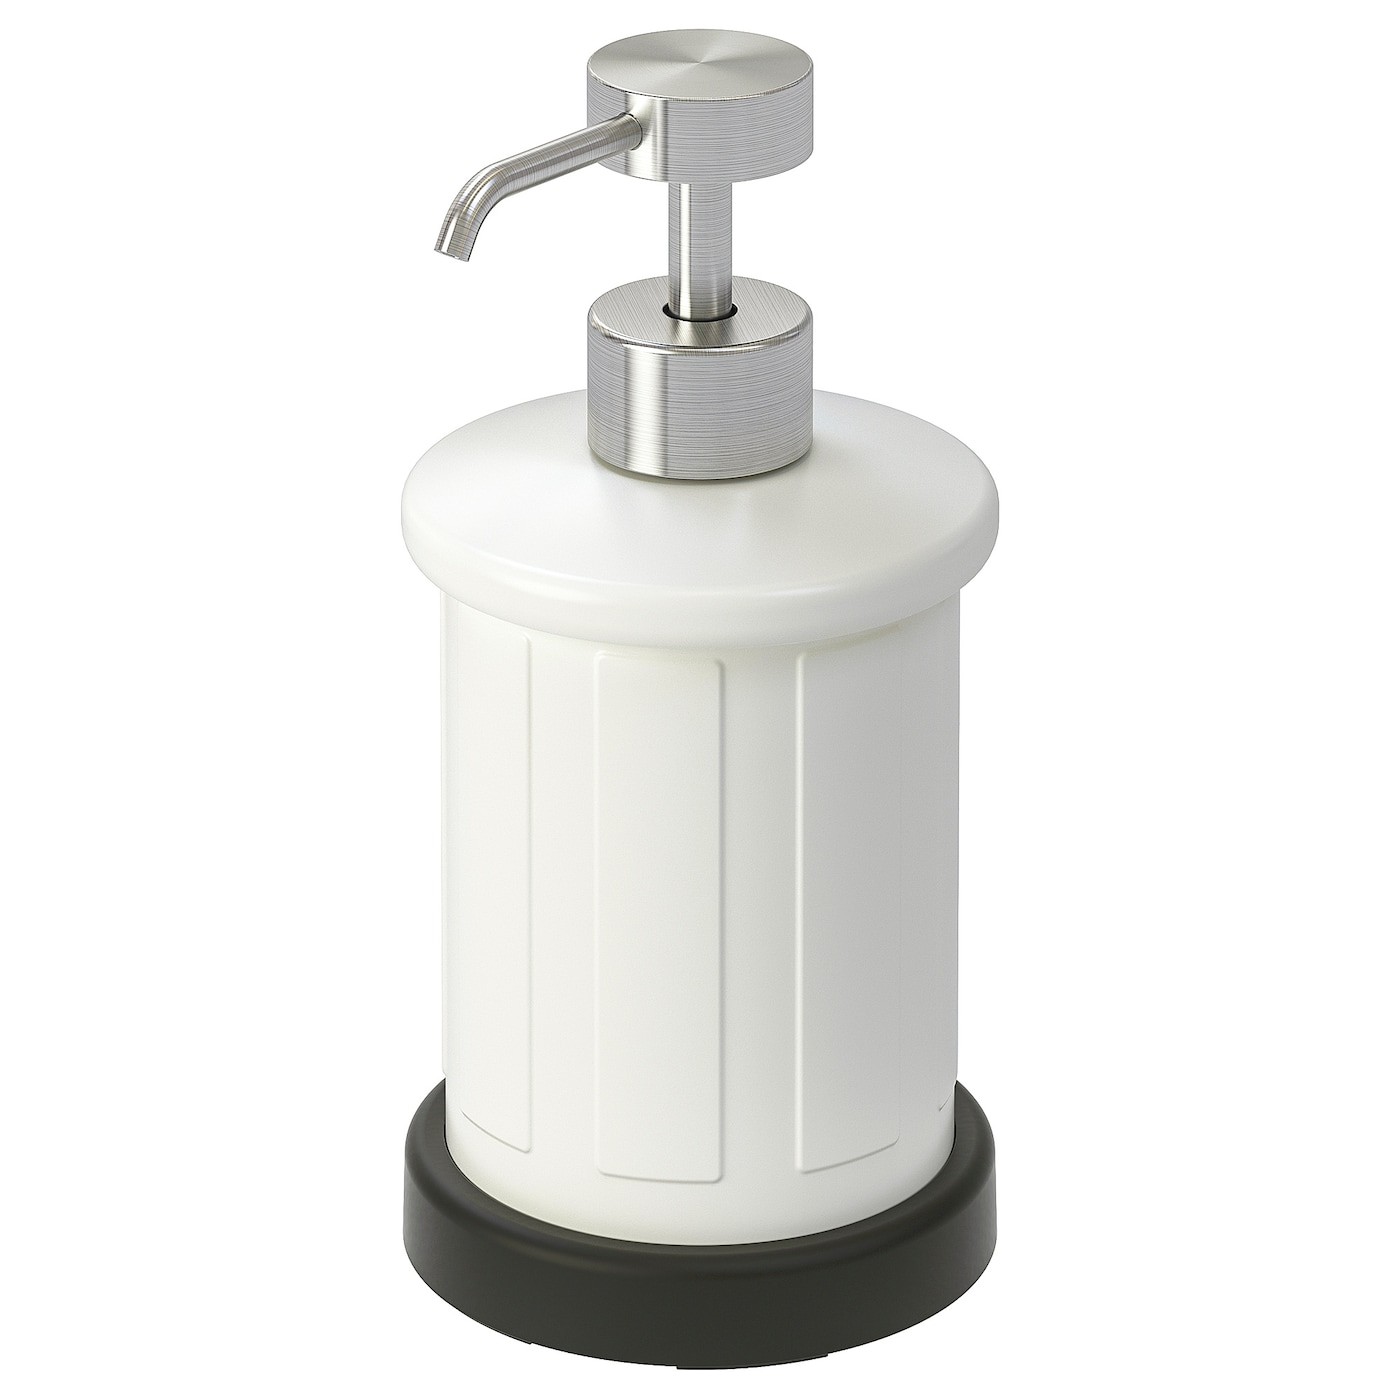 IKEA TOFTAN soap dispenser Easy to fill with your favourite soap.